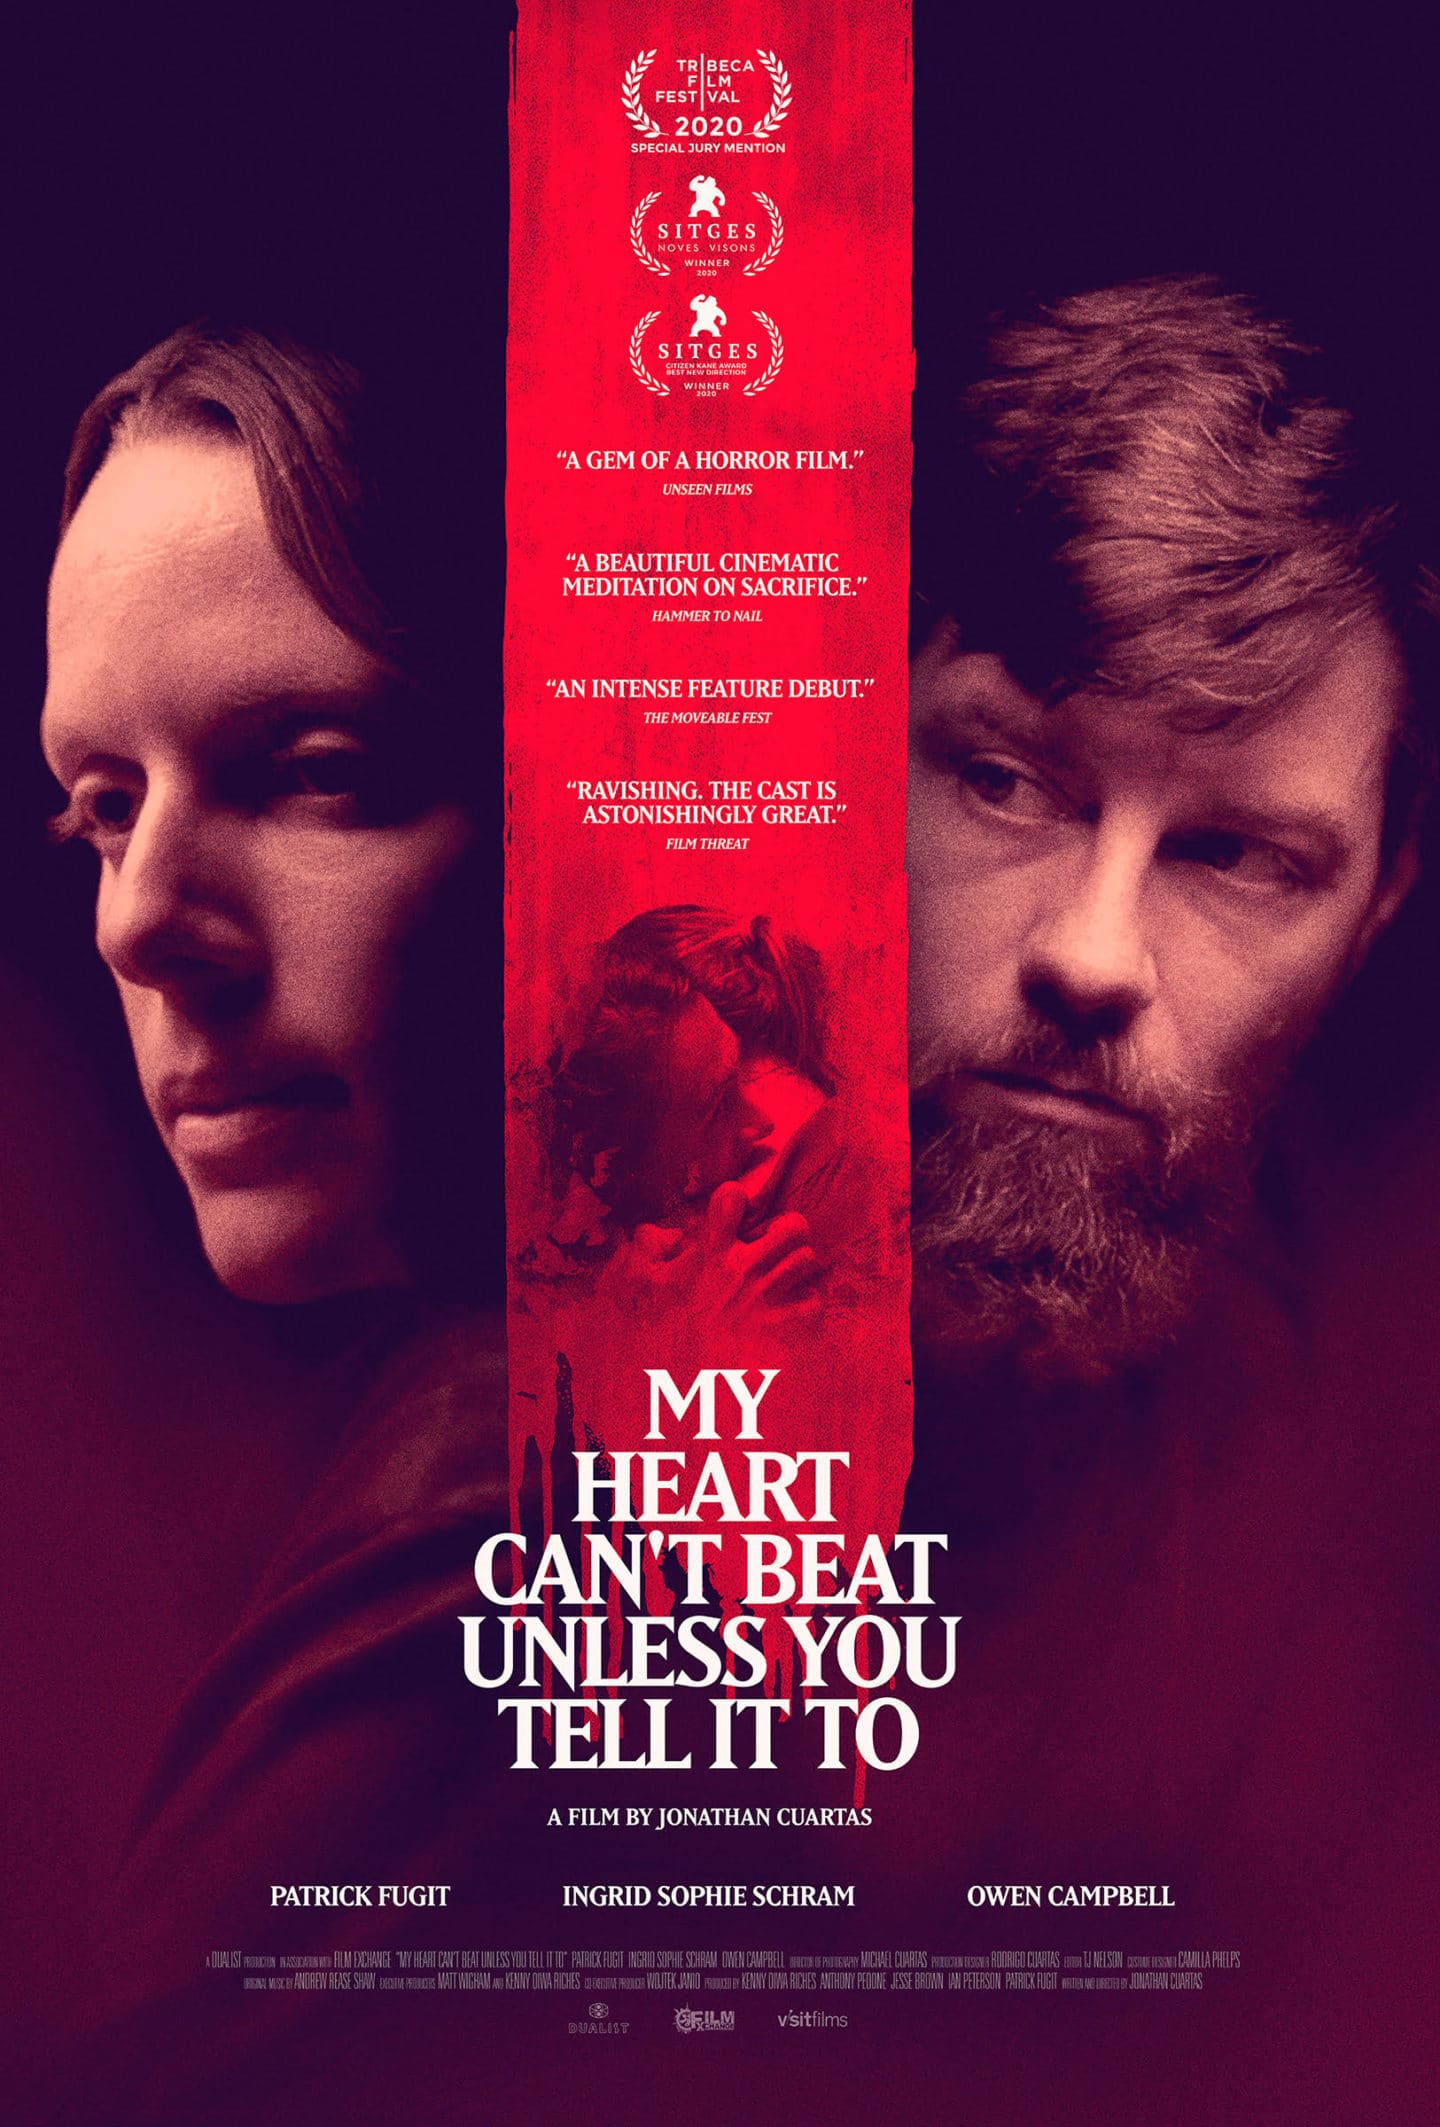 My Heart Can't Beat Unless You Tell It To – Teaser Poster